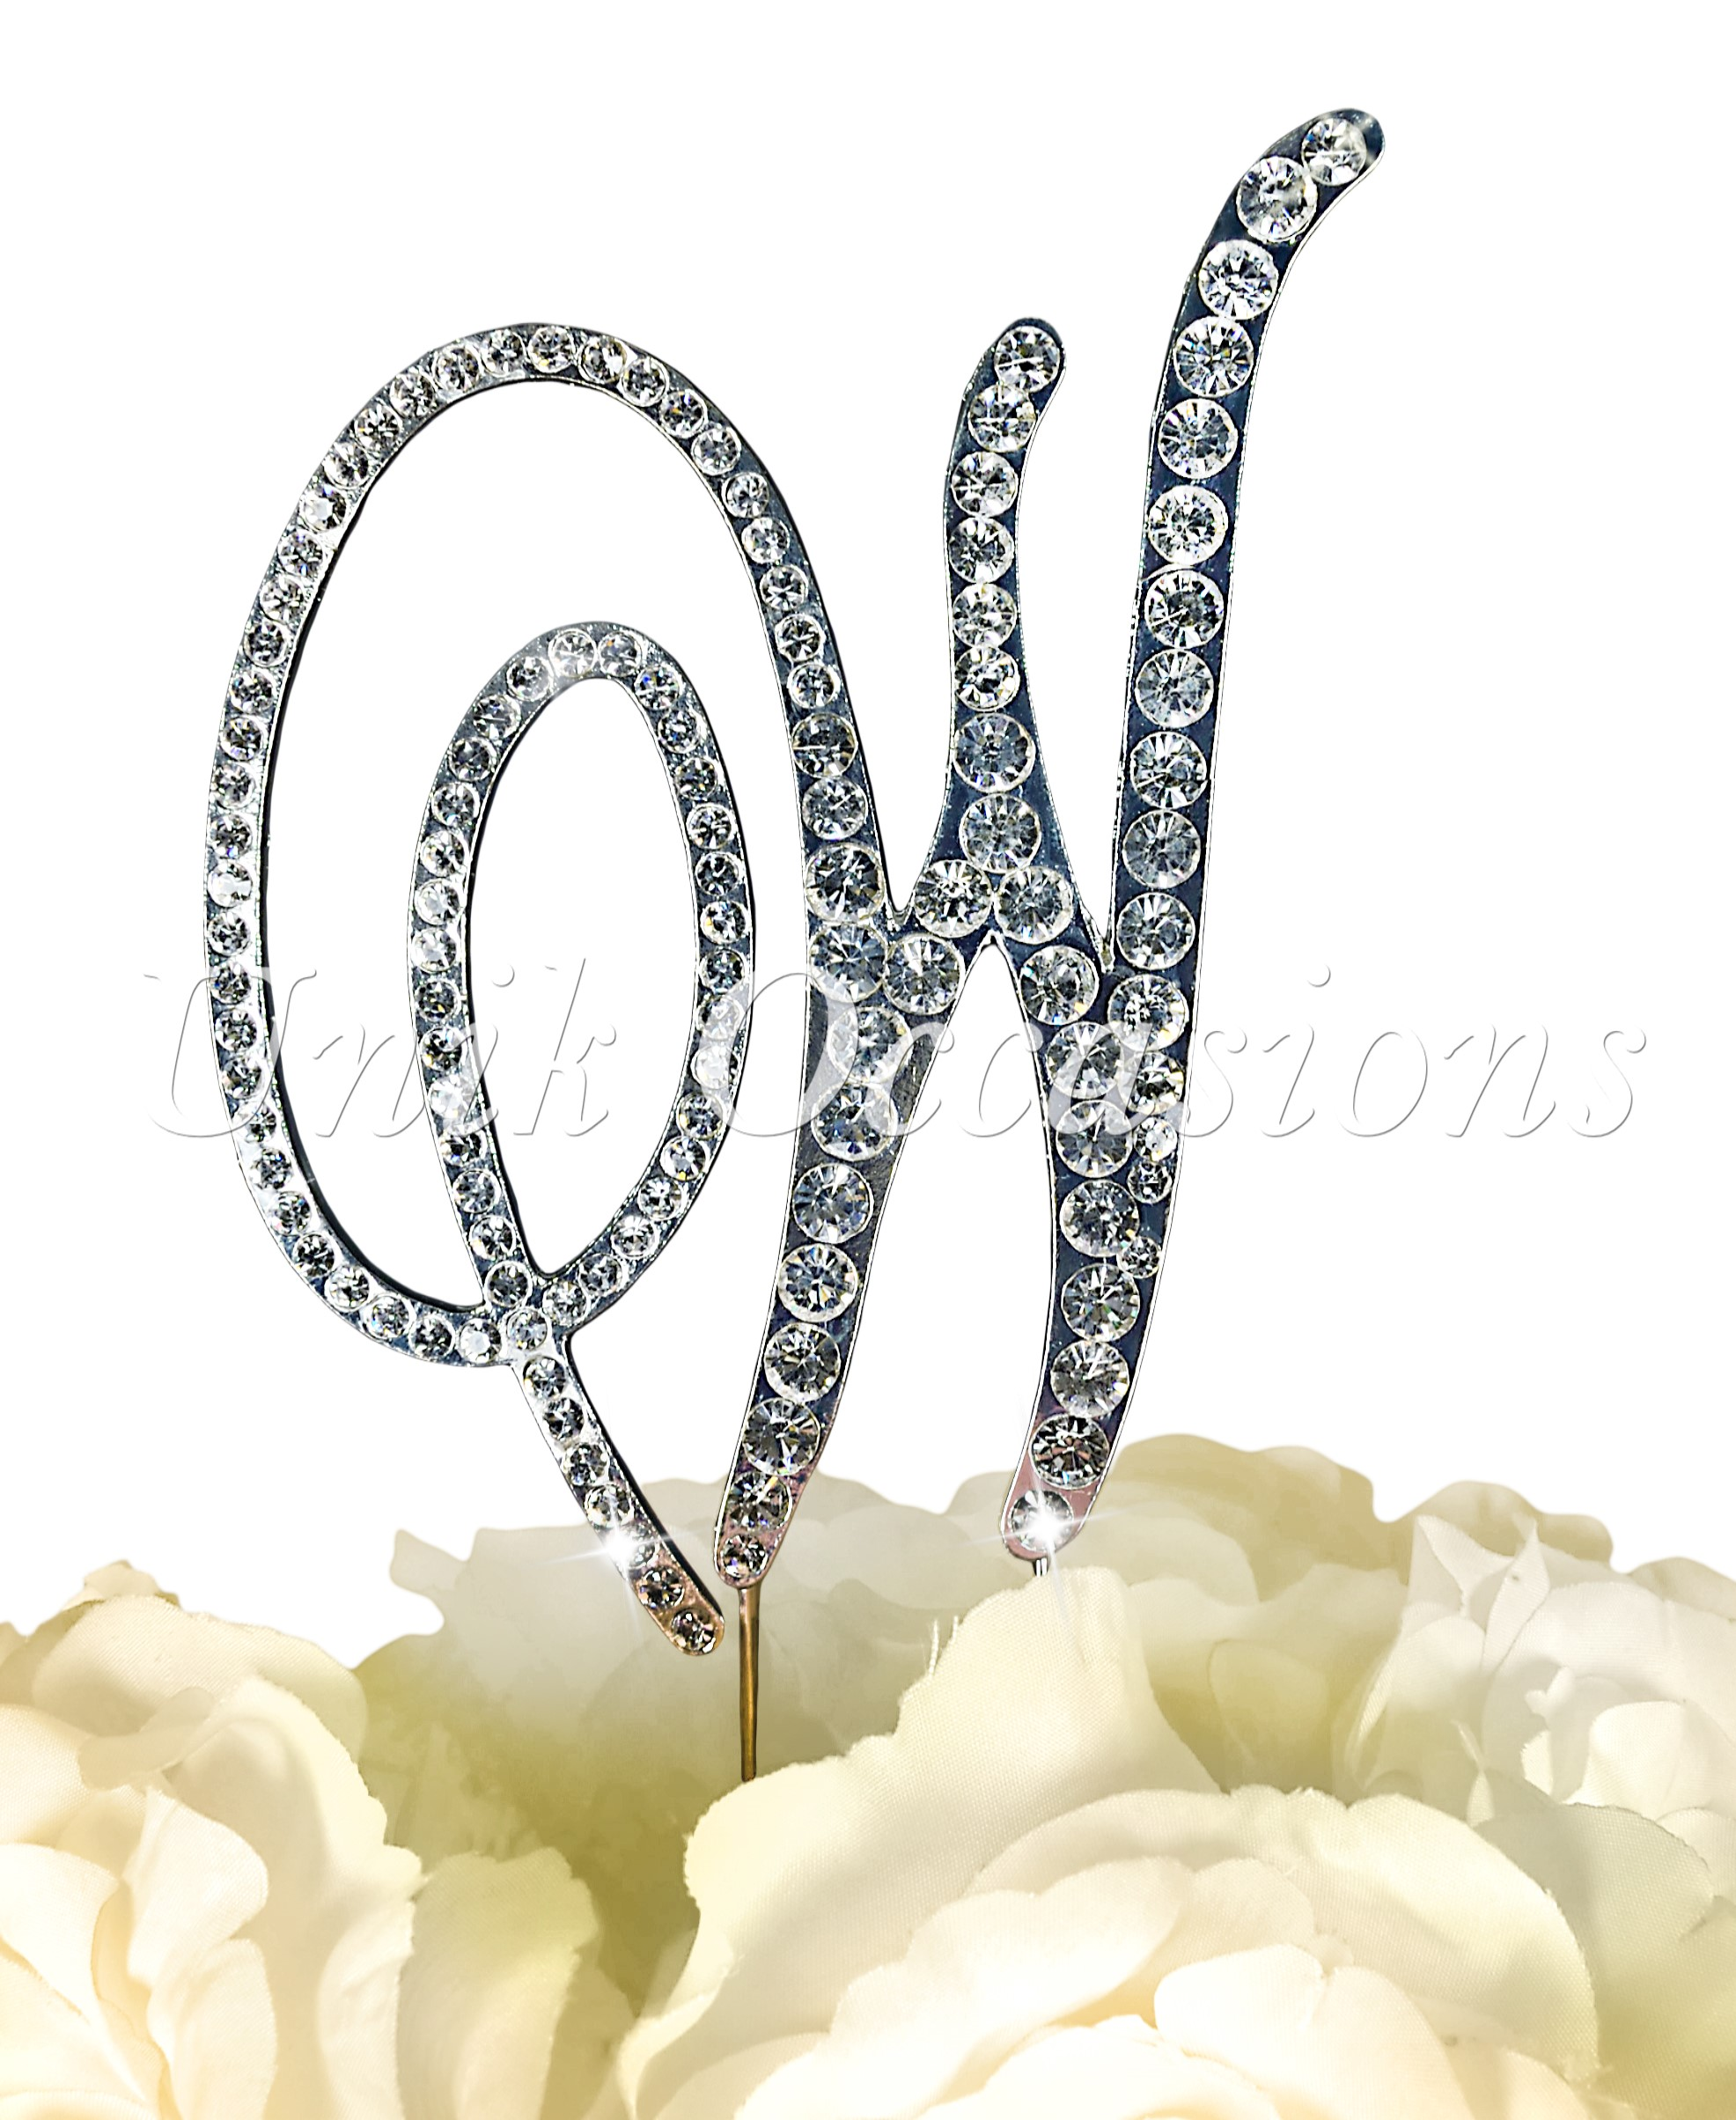 Large Unik Occasions Victorian Crystal Rhinestone Wedding Cake Topper Letter W Gold UO-CT-VIC-0038-W